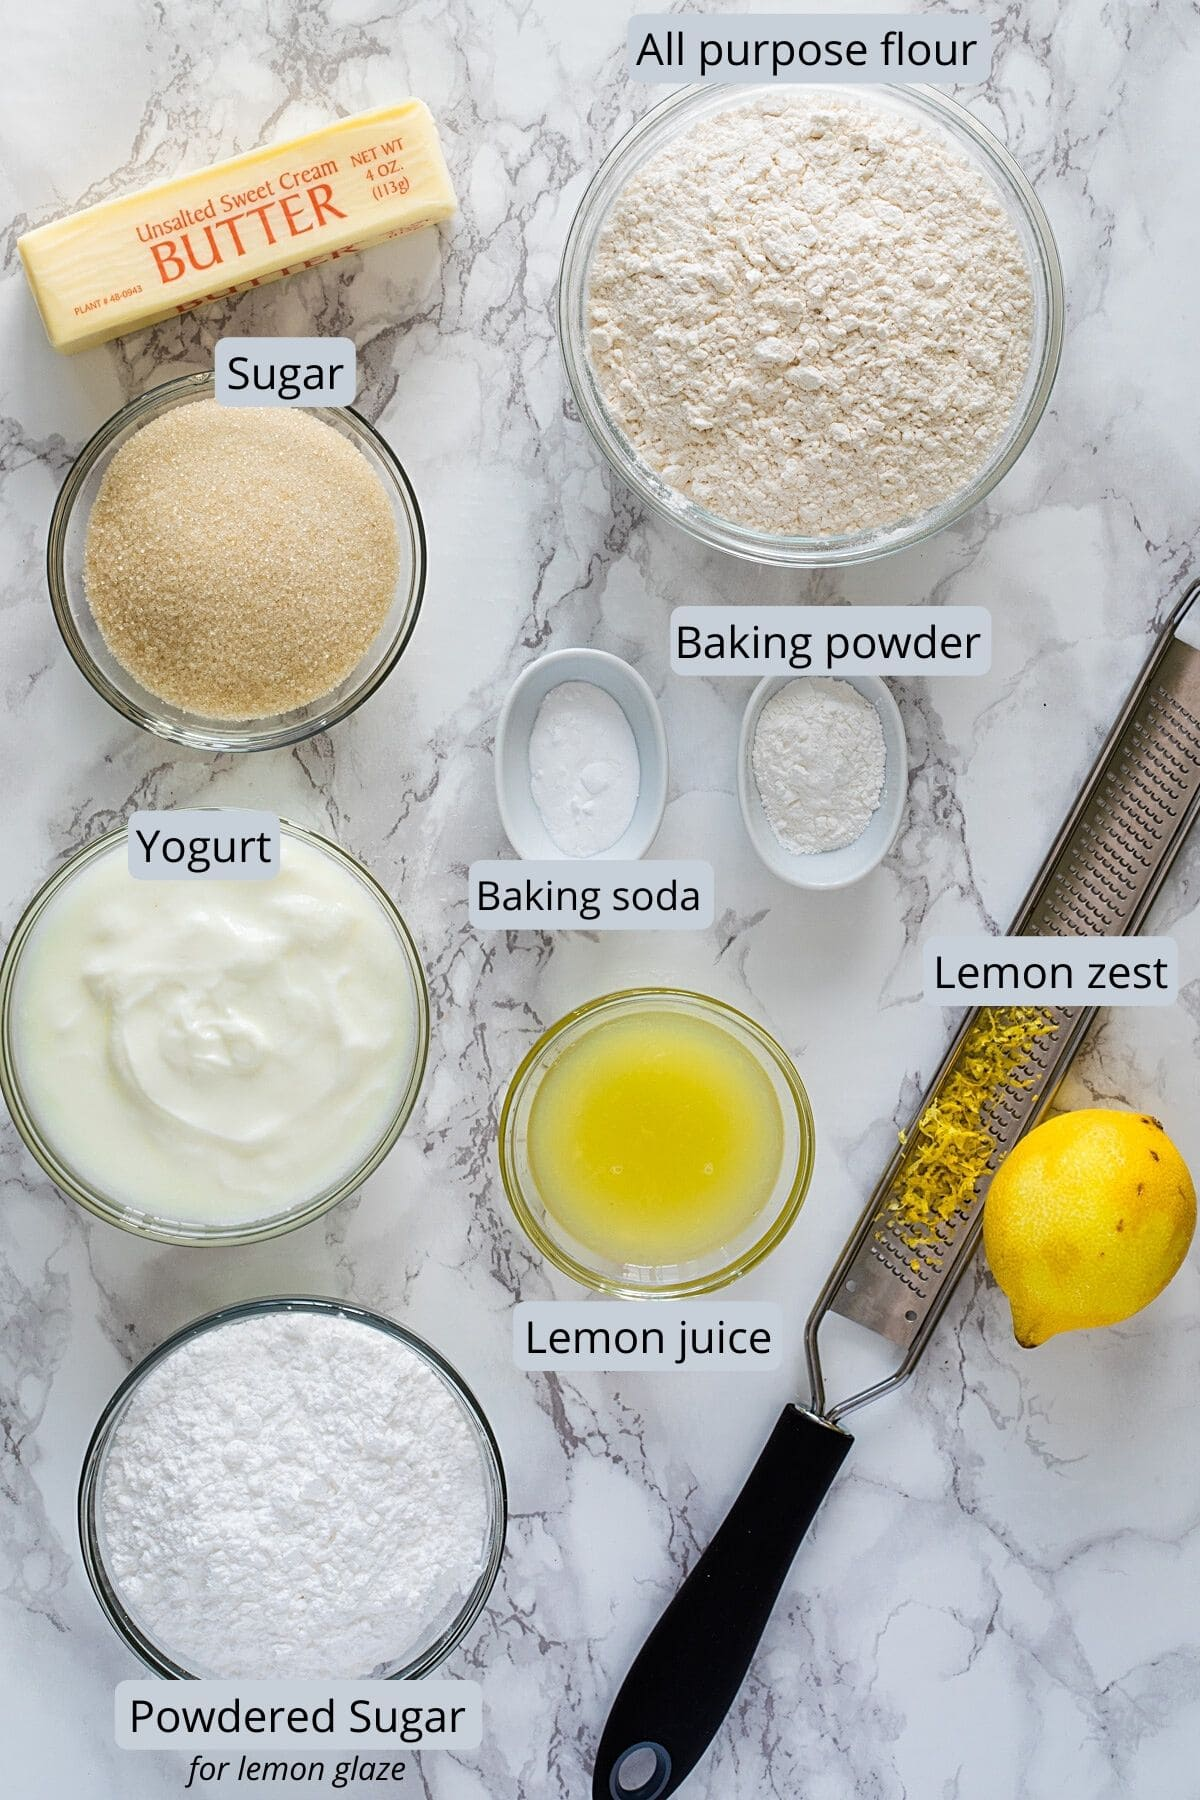 Ingredients used in eggless lemon cake in individual bowls on a marble surface.